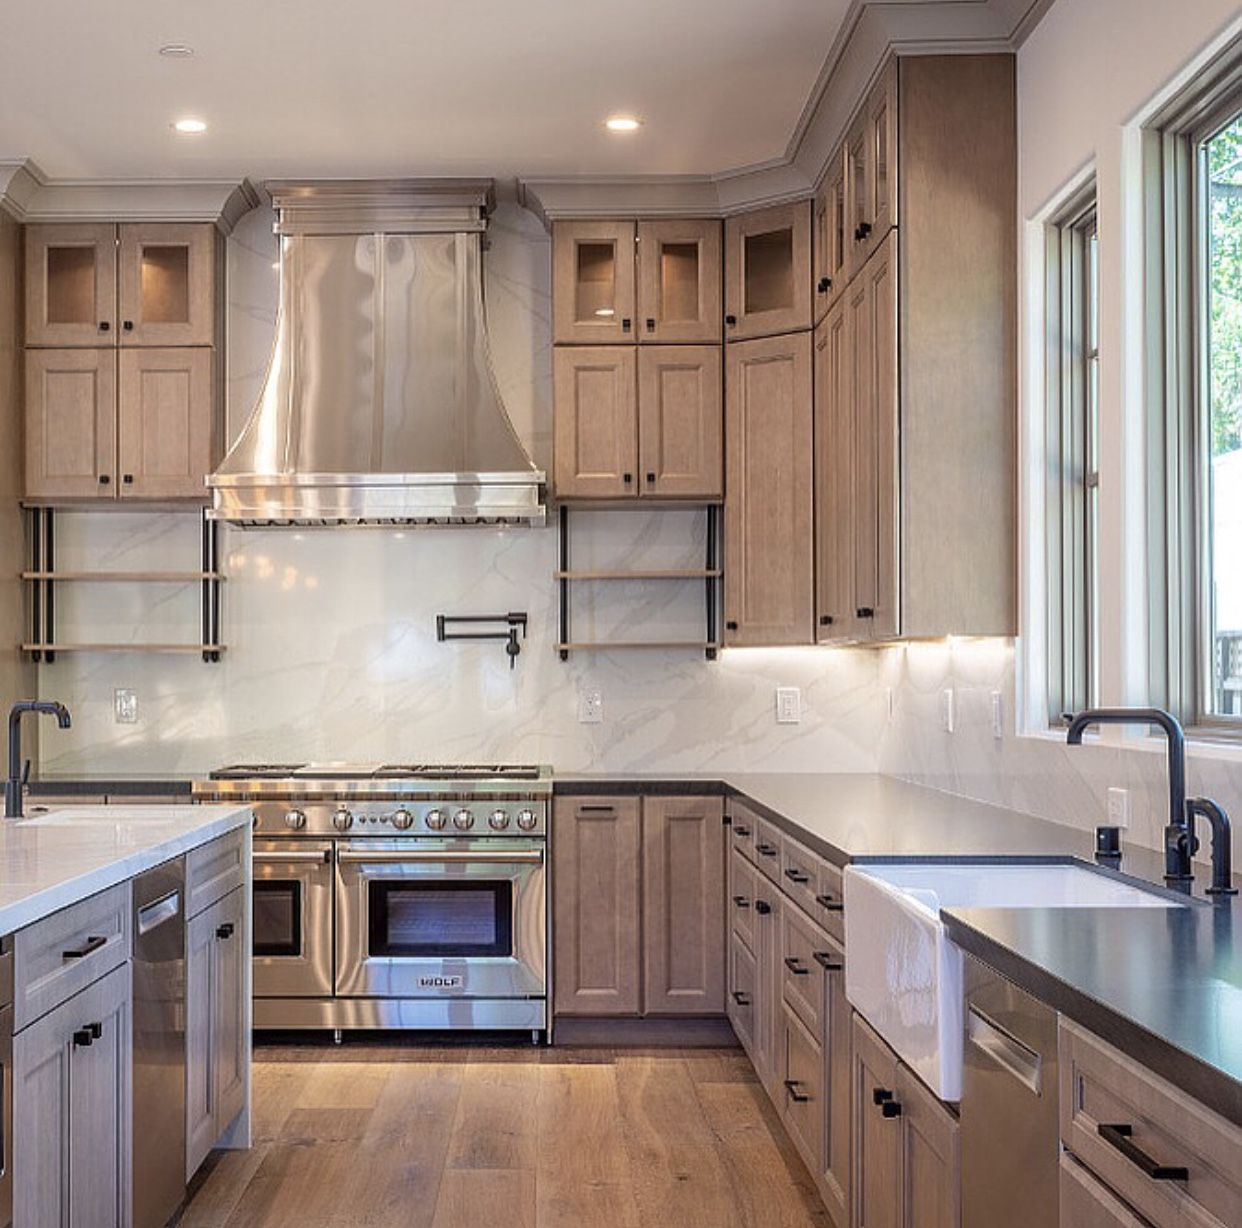 Pin by THE COW PELT on Kitchen Design (With images ...